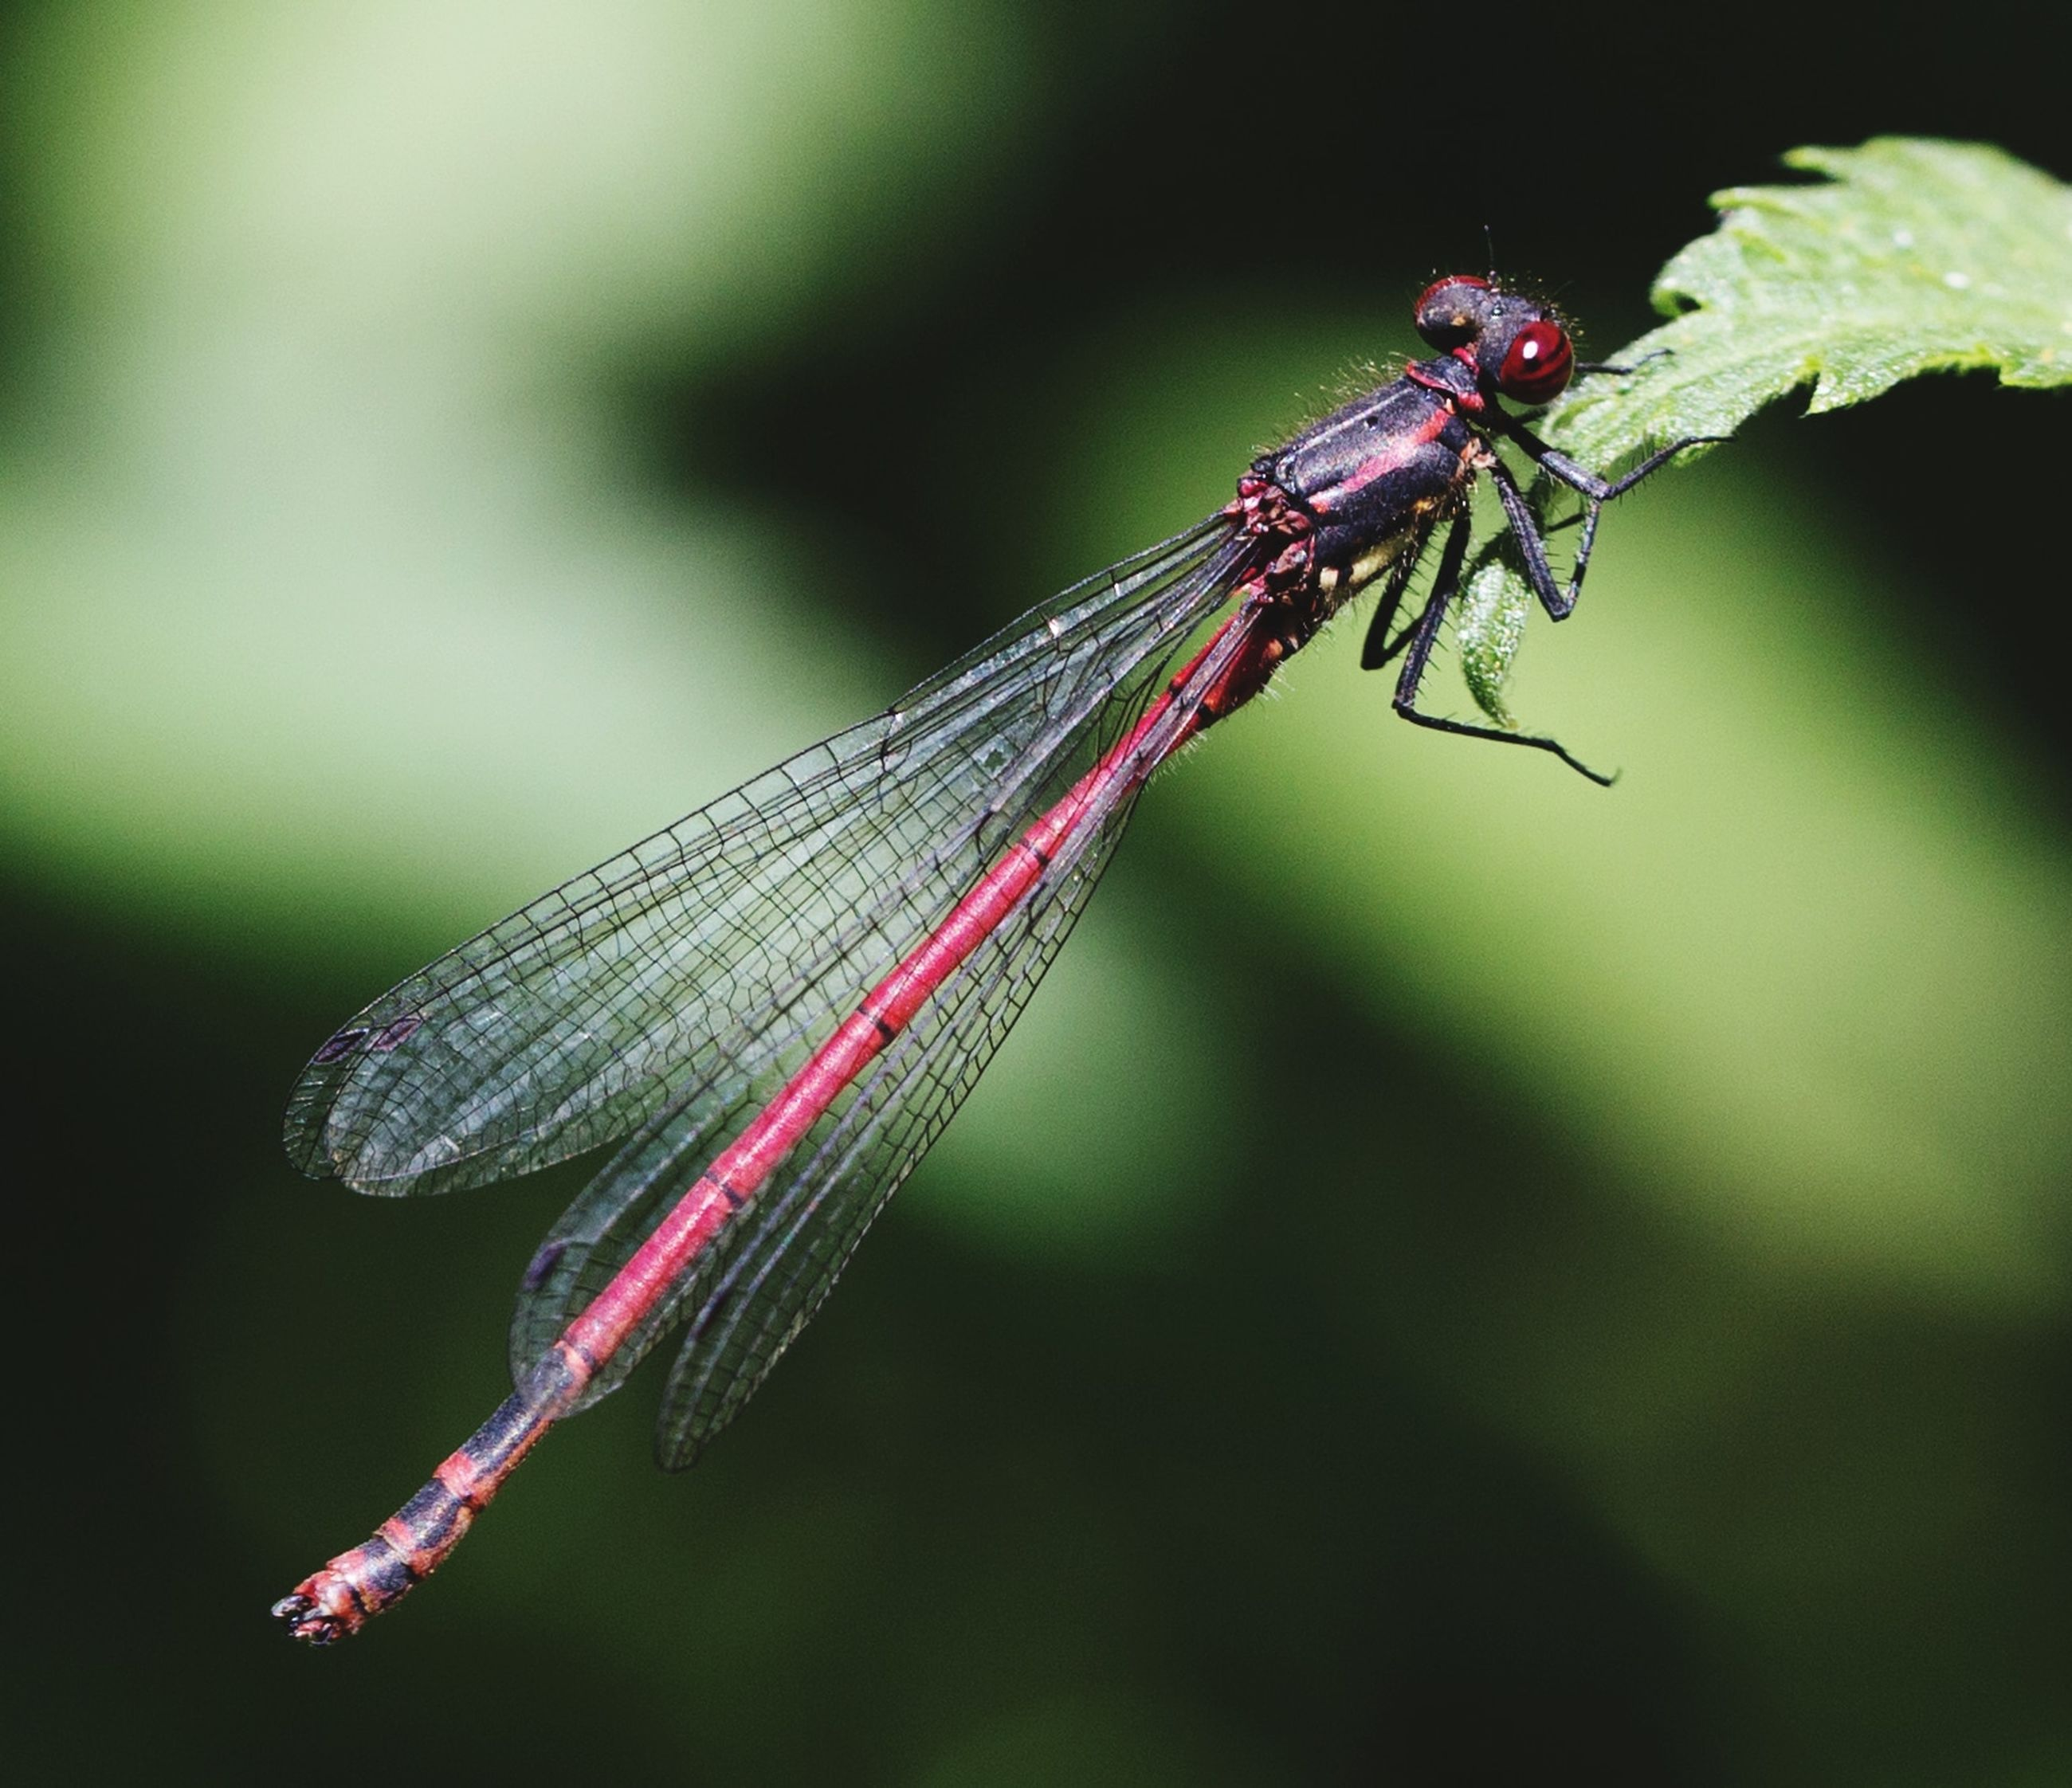 insect, invertebrate, animal wildlife, animal themes, animals in the wild, animal, close-up, one animal, focus on foreground, animal wing, no people, nature, day, plant, plant part, damselfly, leaf, outdoors, dragonfly, zoology